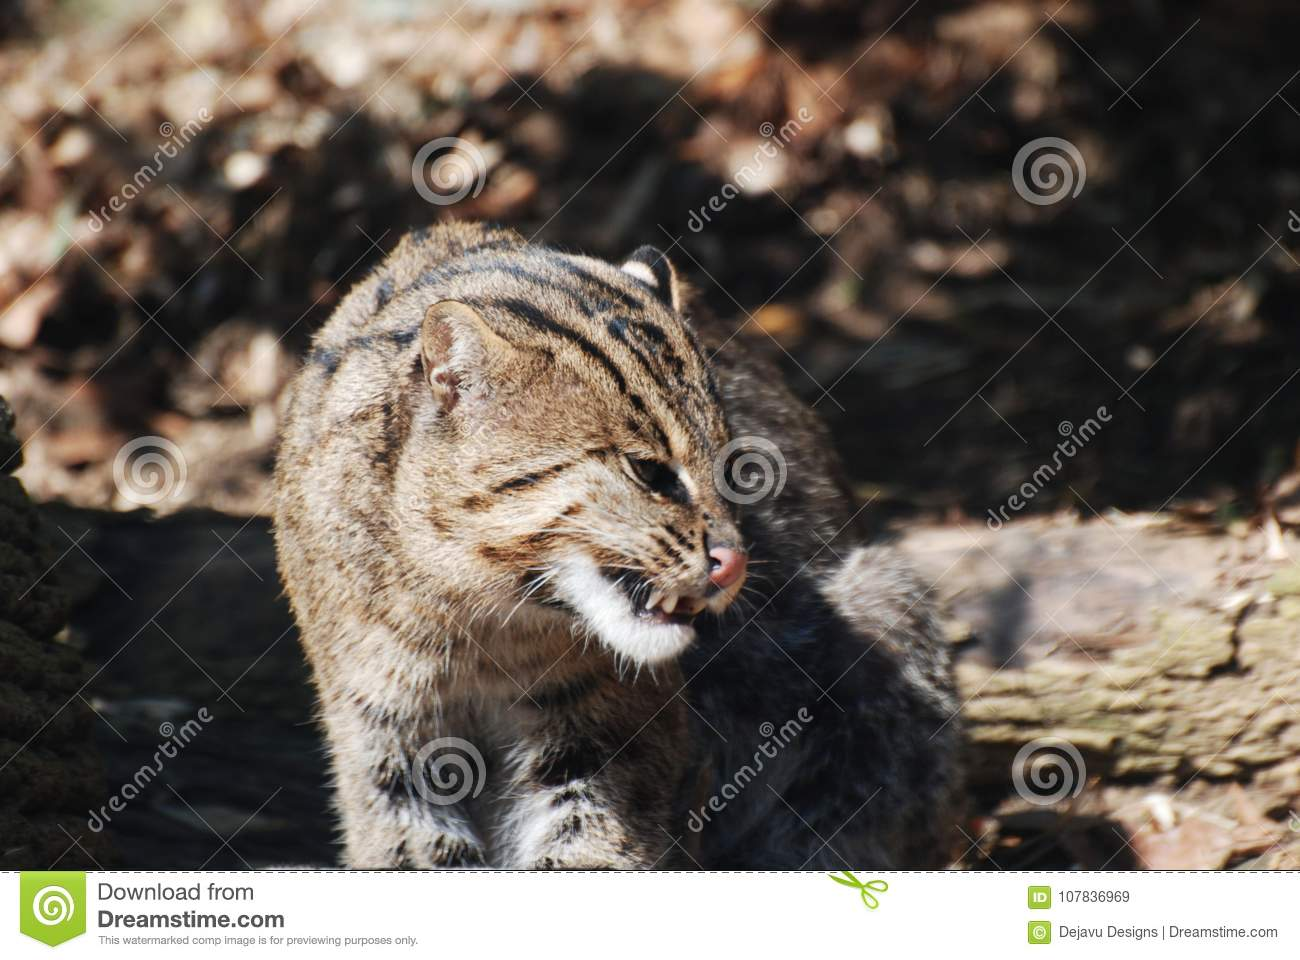 461 Fisher Cat Photos Free Royalty Free Stock Photos From Dreamstime